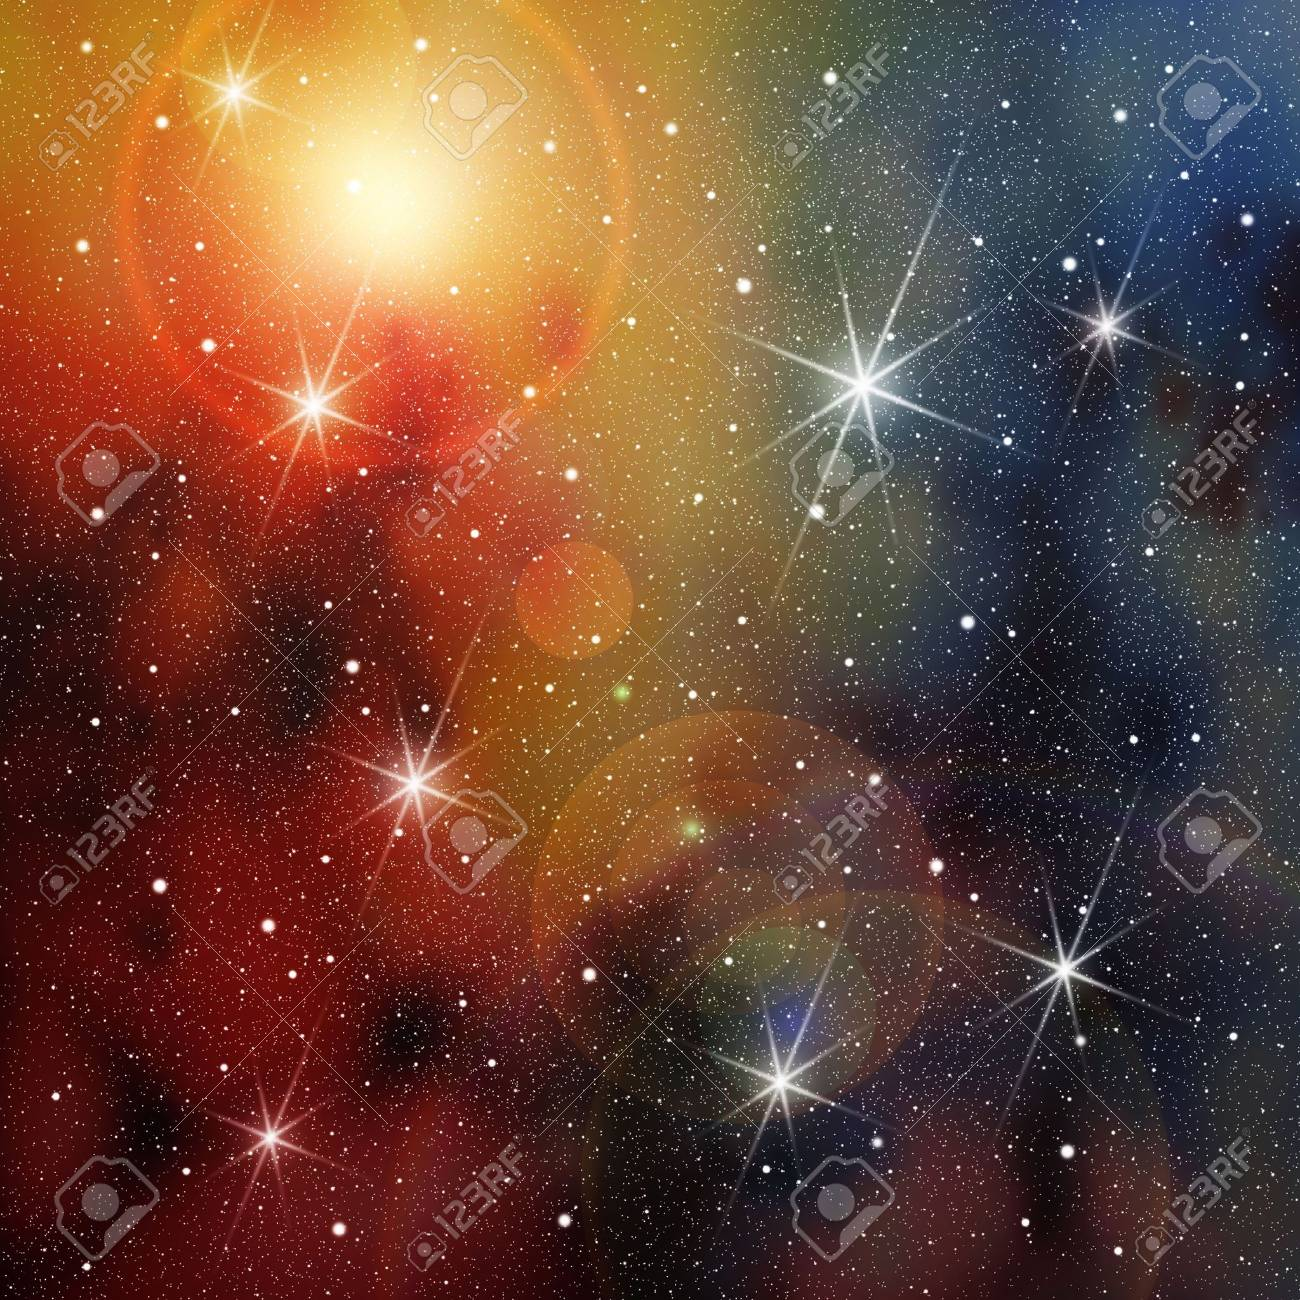 Cosmic Space with lots of Stars Stock Photo - 4174227